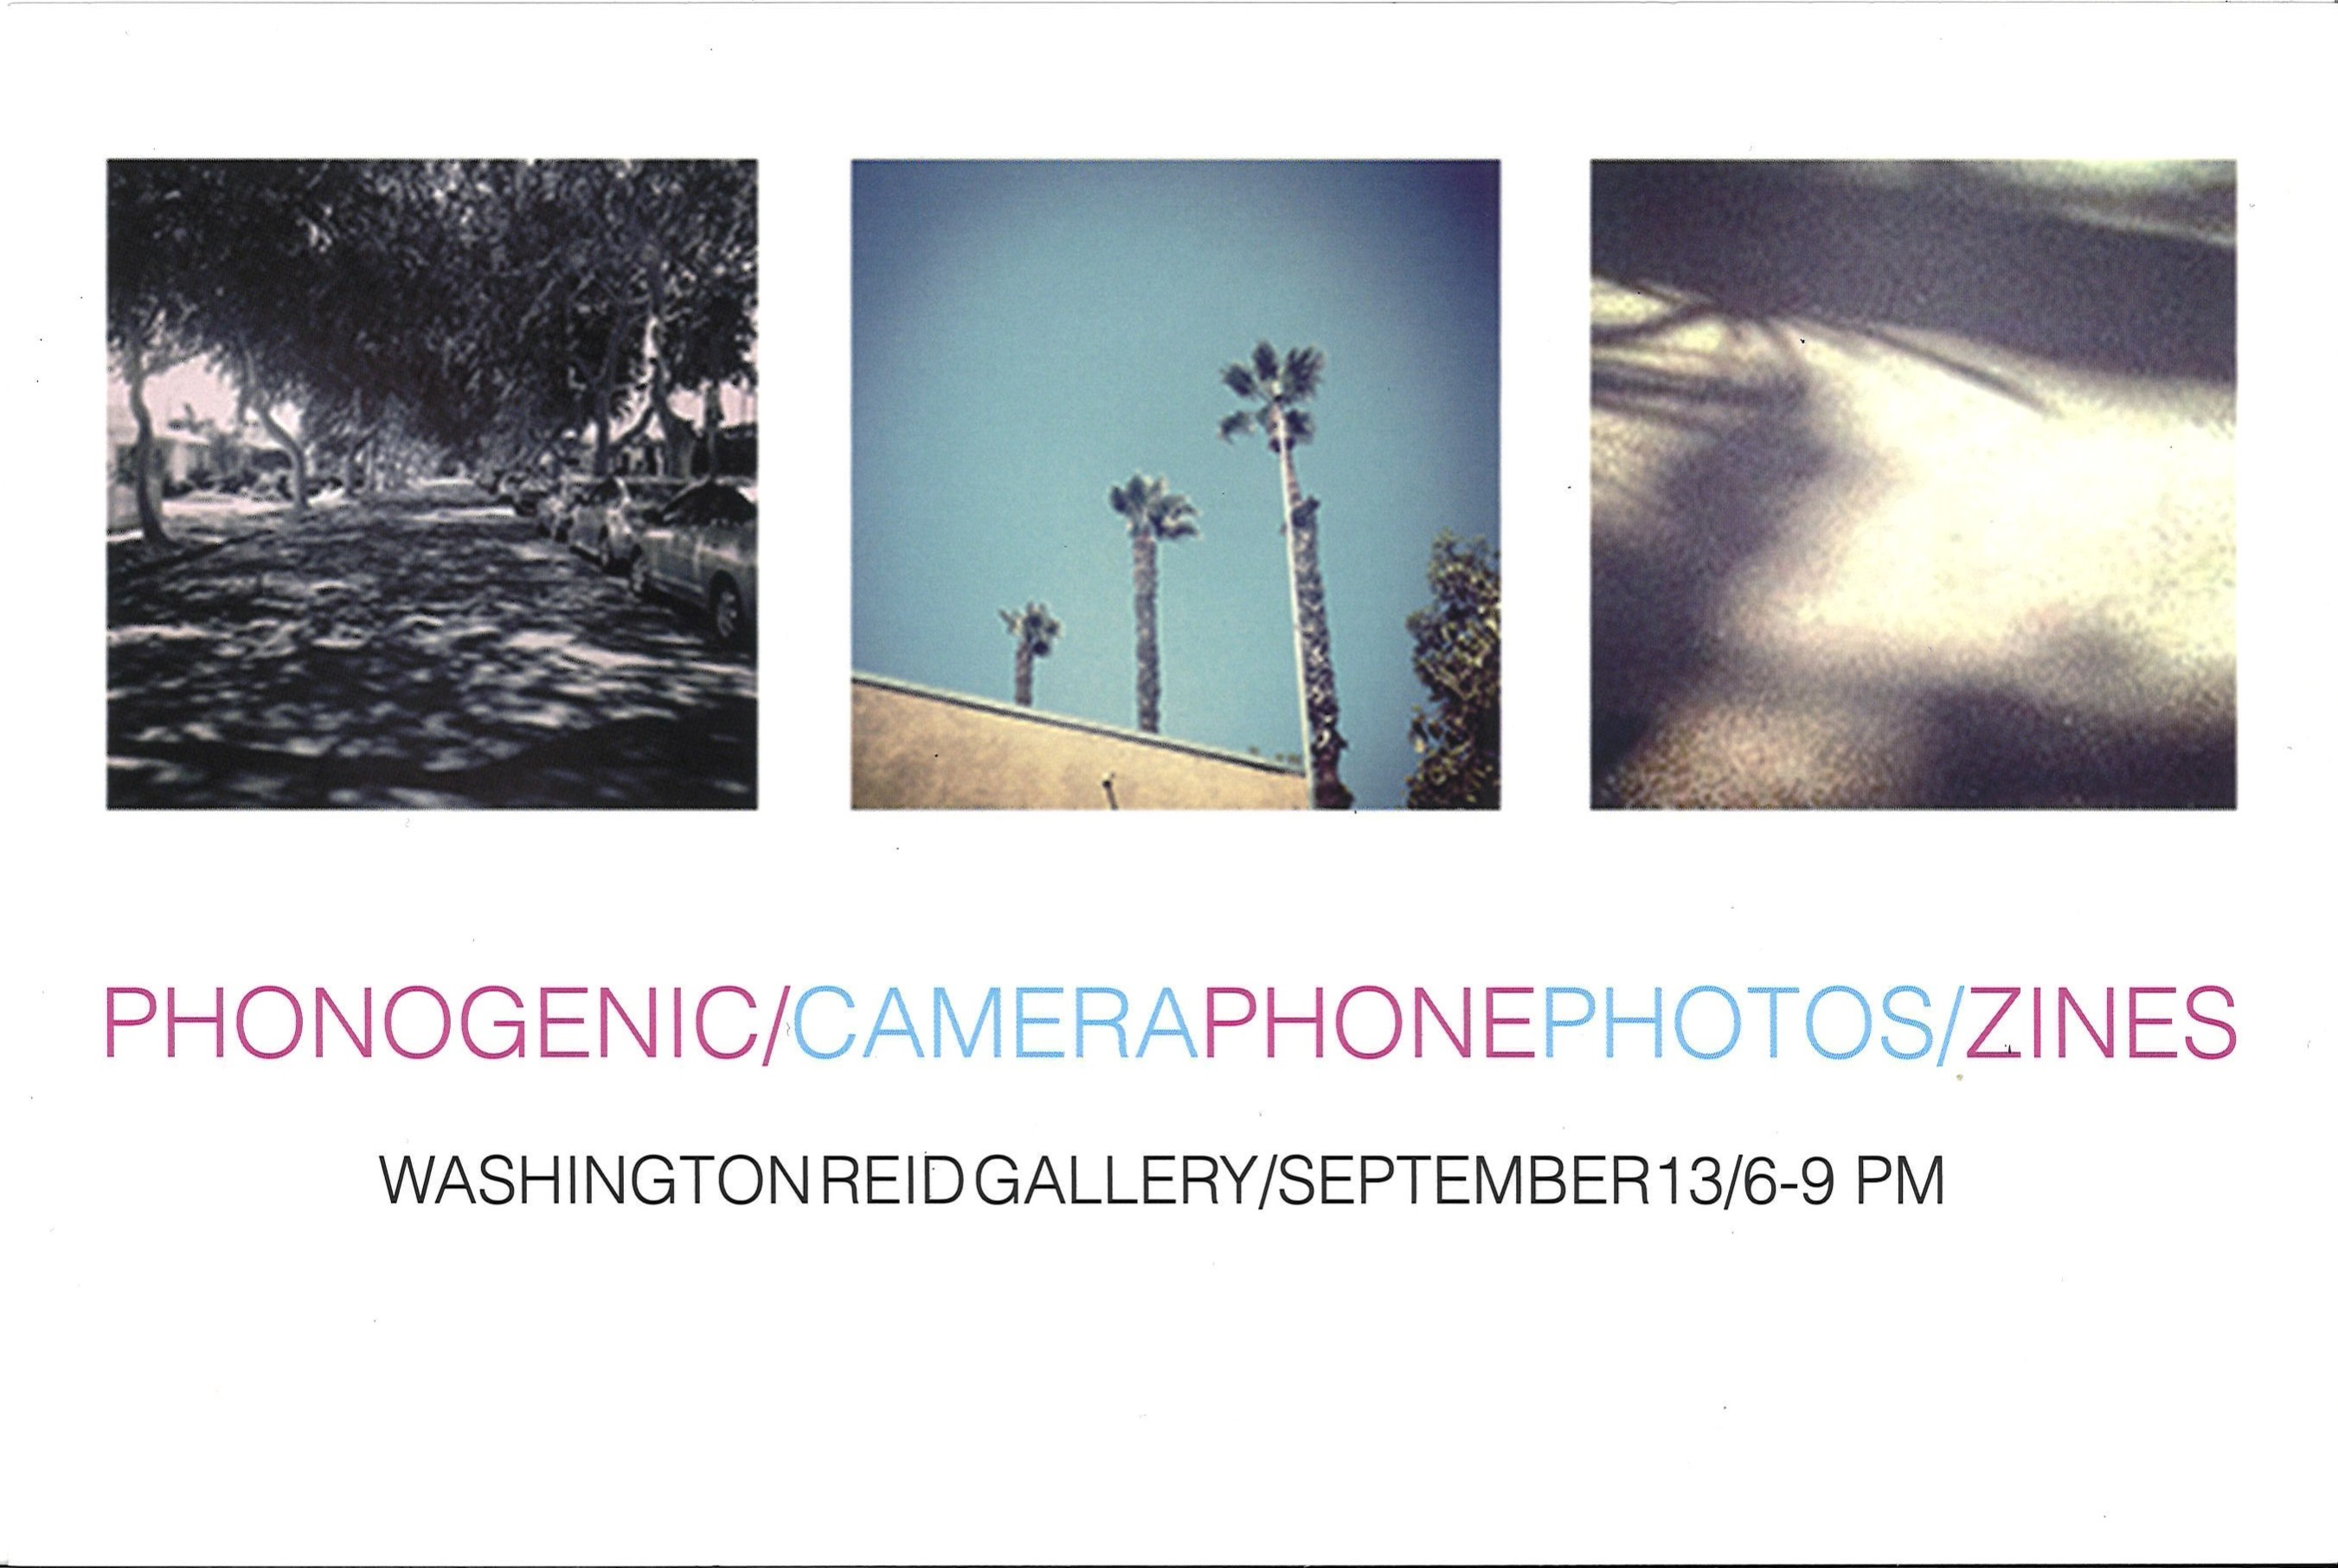 Phonogenic/CameraPhonePhotos/Zines